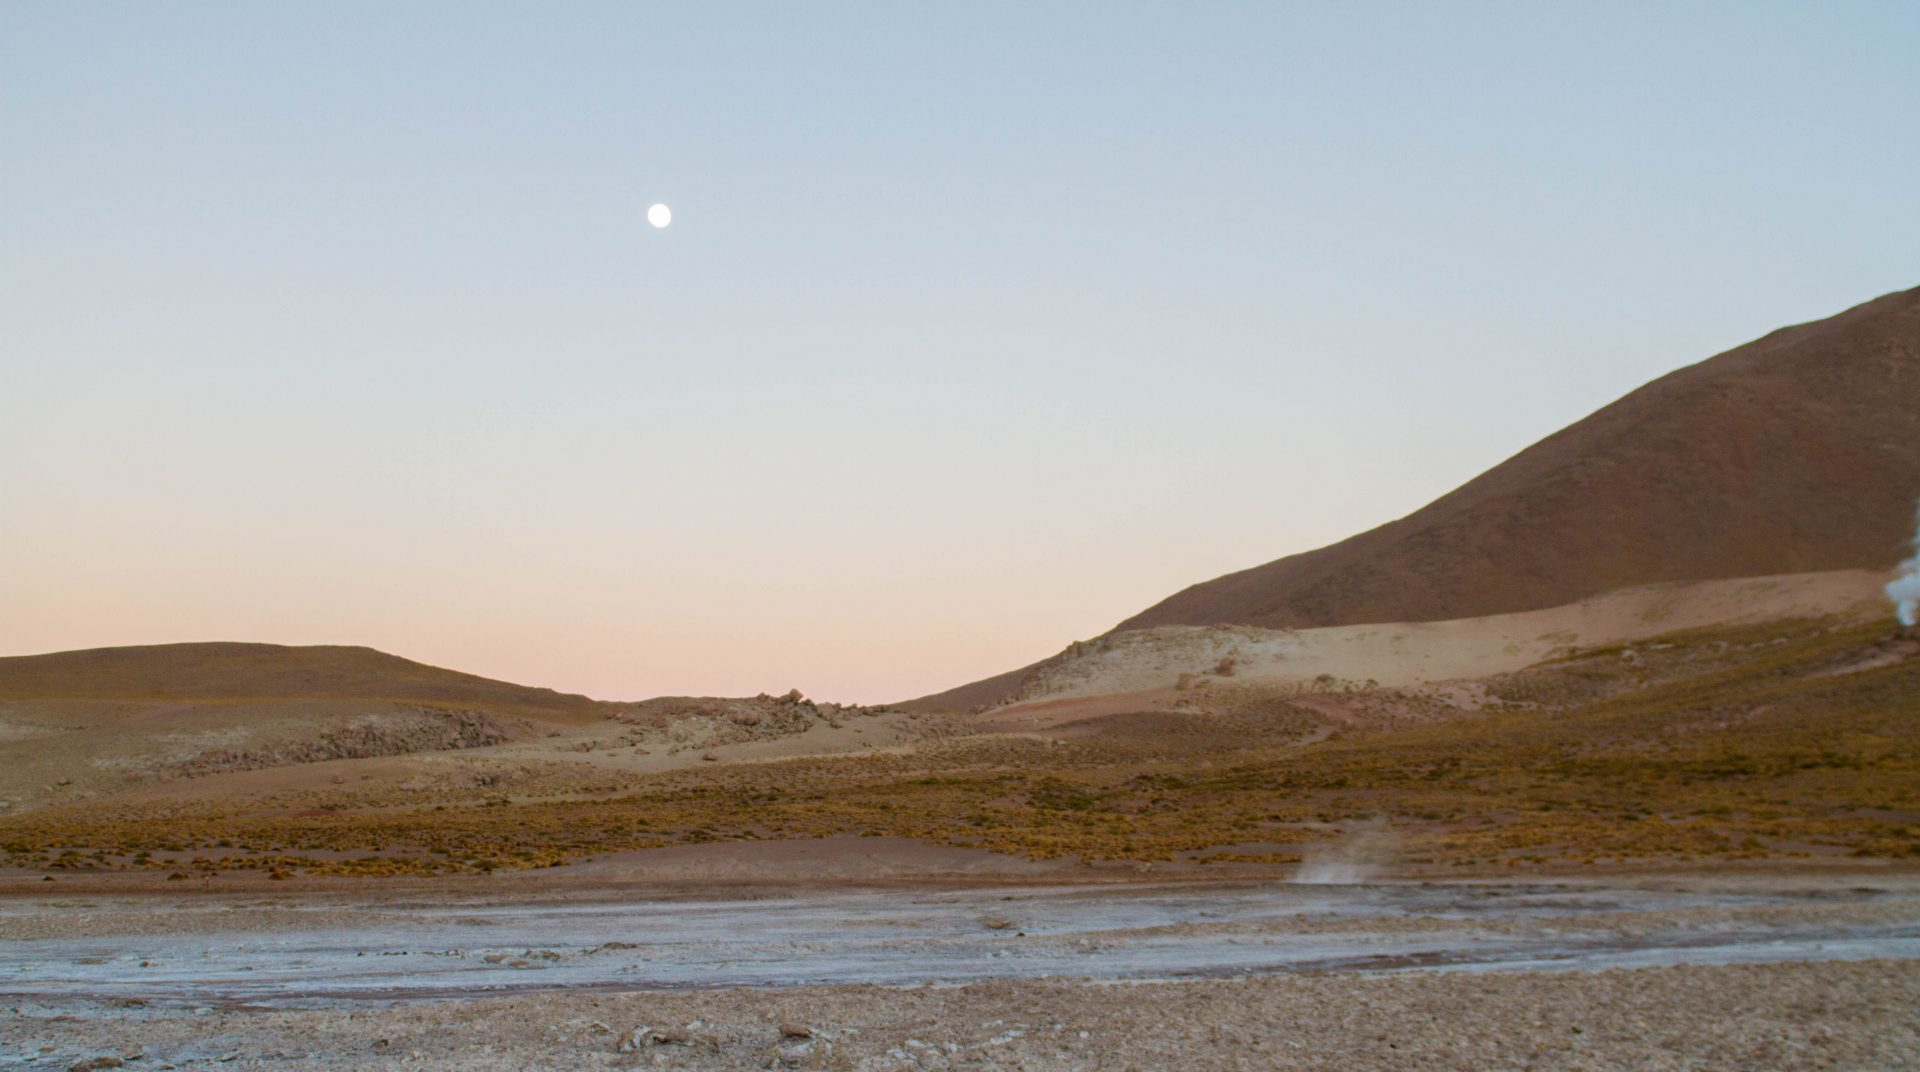 El Tatio geyser before sunrise with the moon still in view.